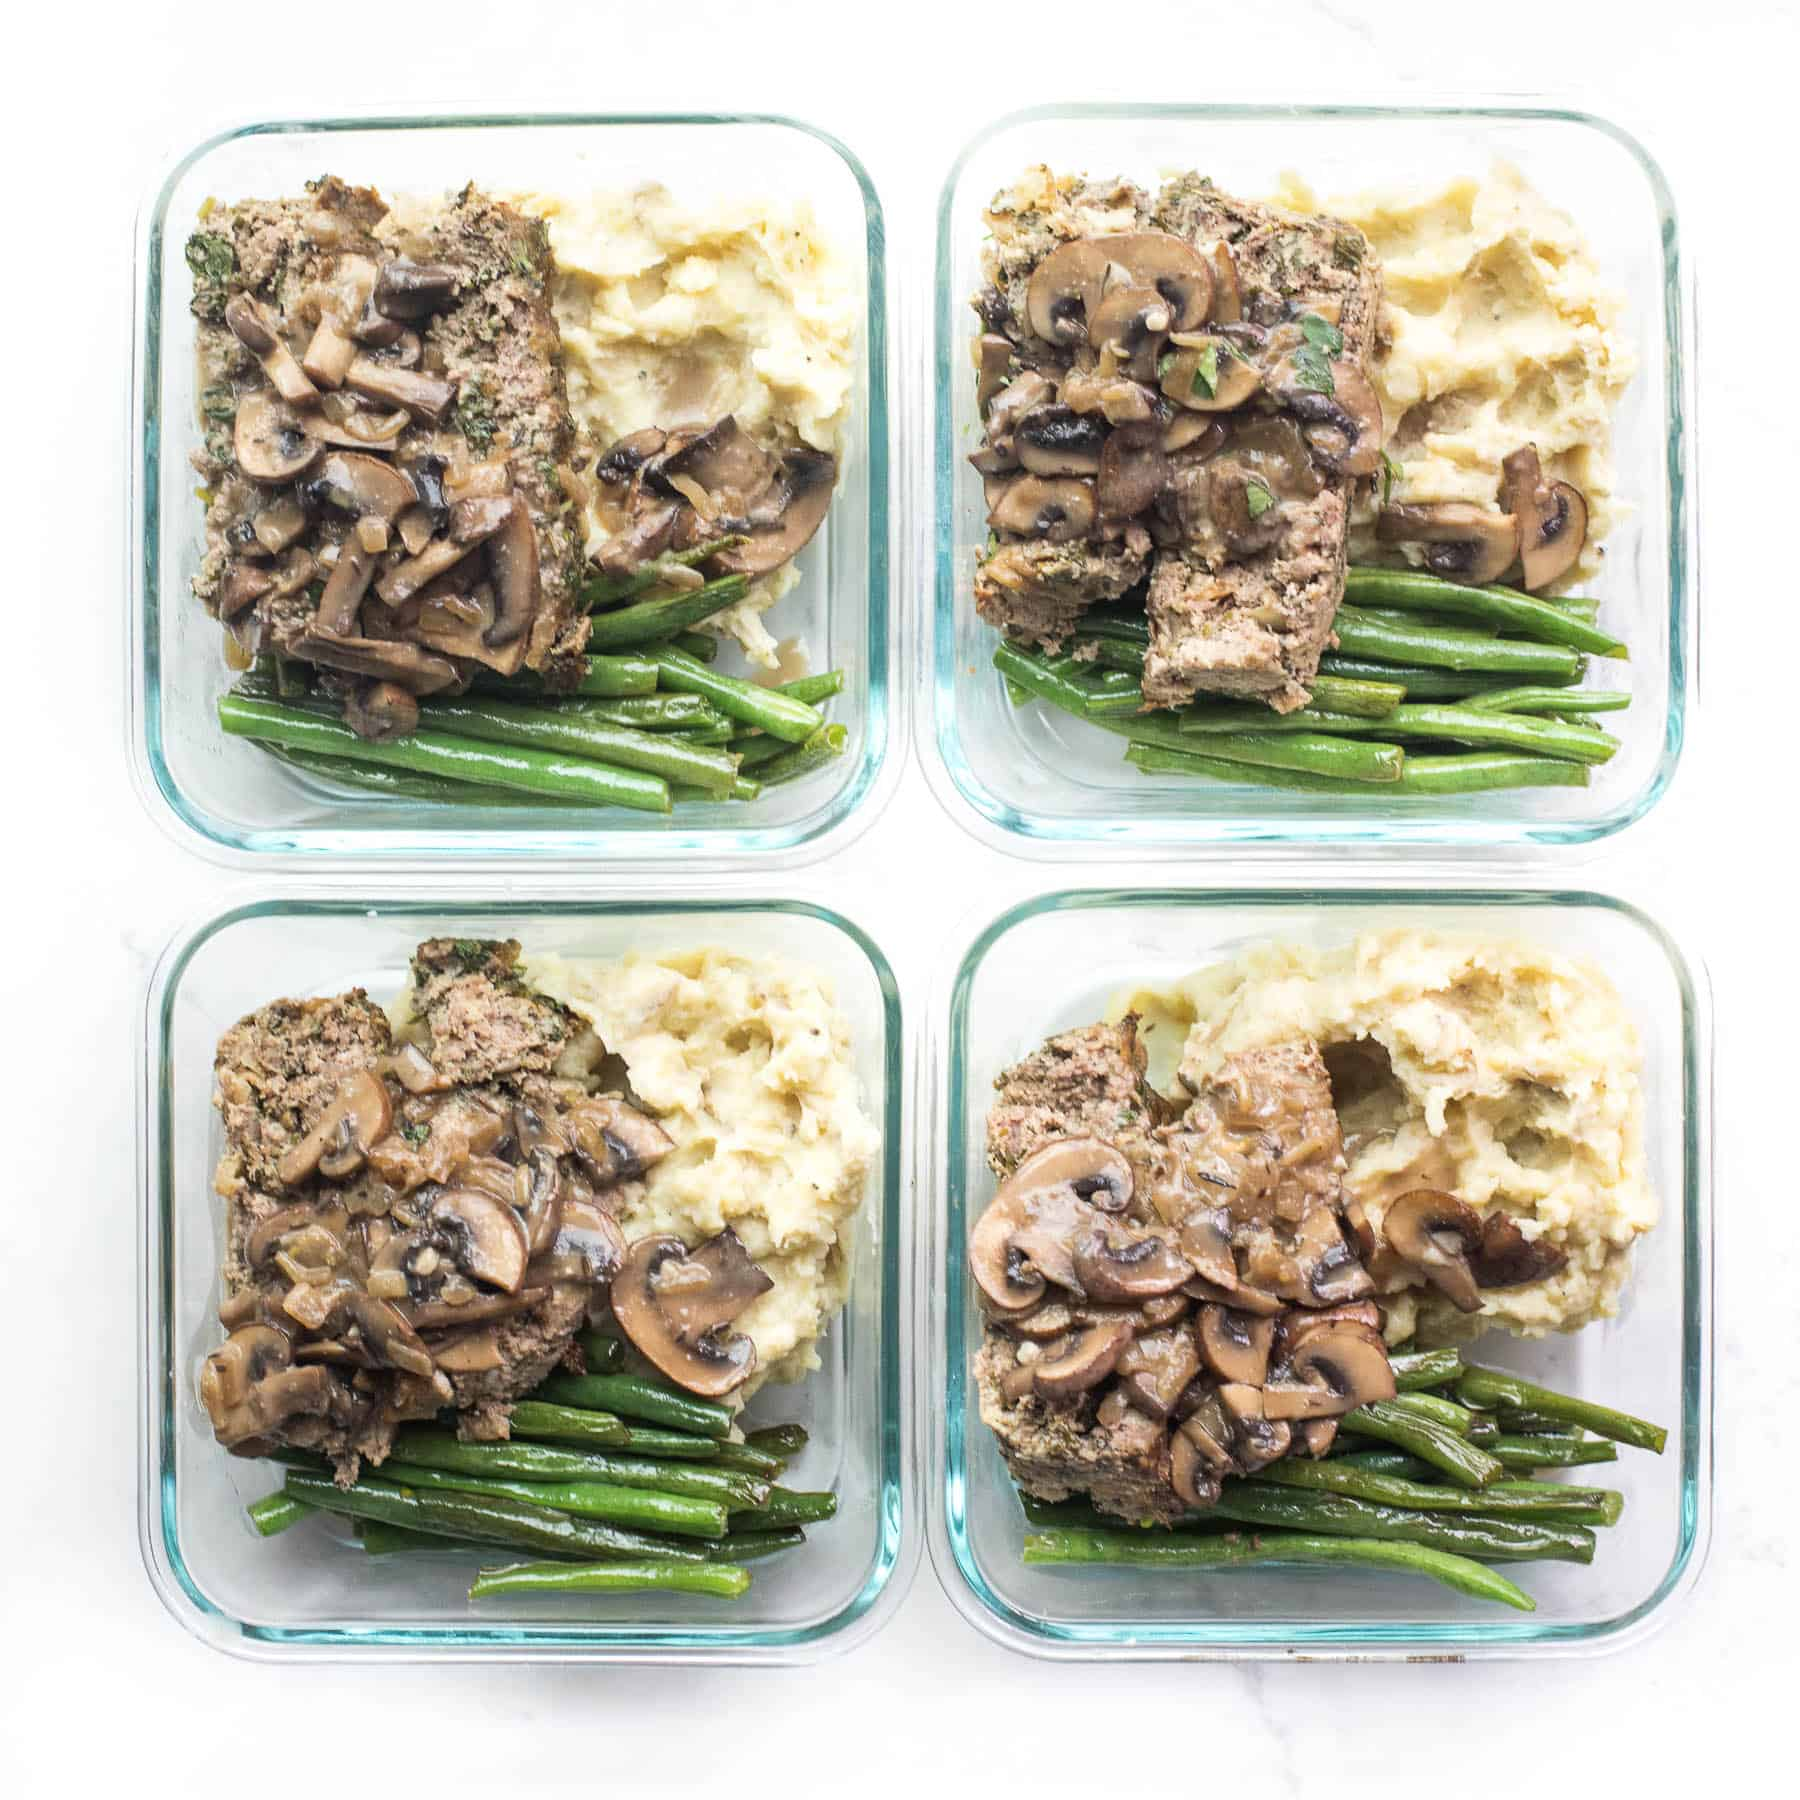 meal prep containers with meatloaf, mashed potatoes and green beans